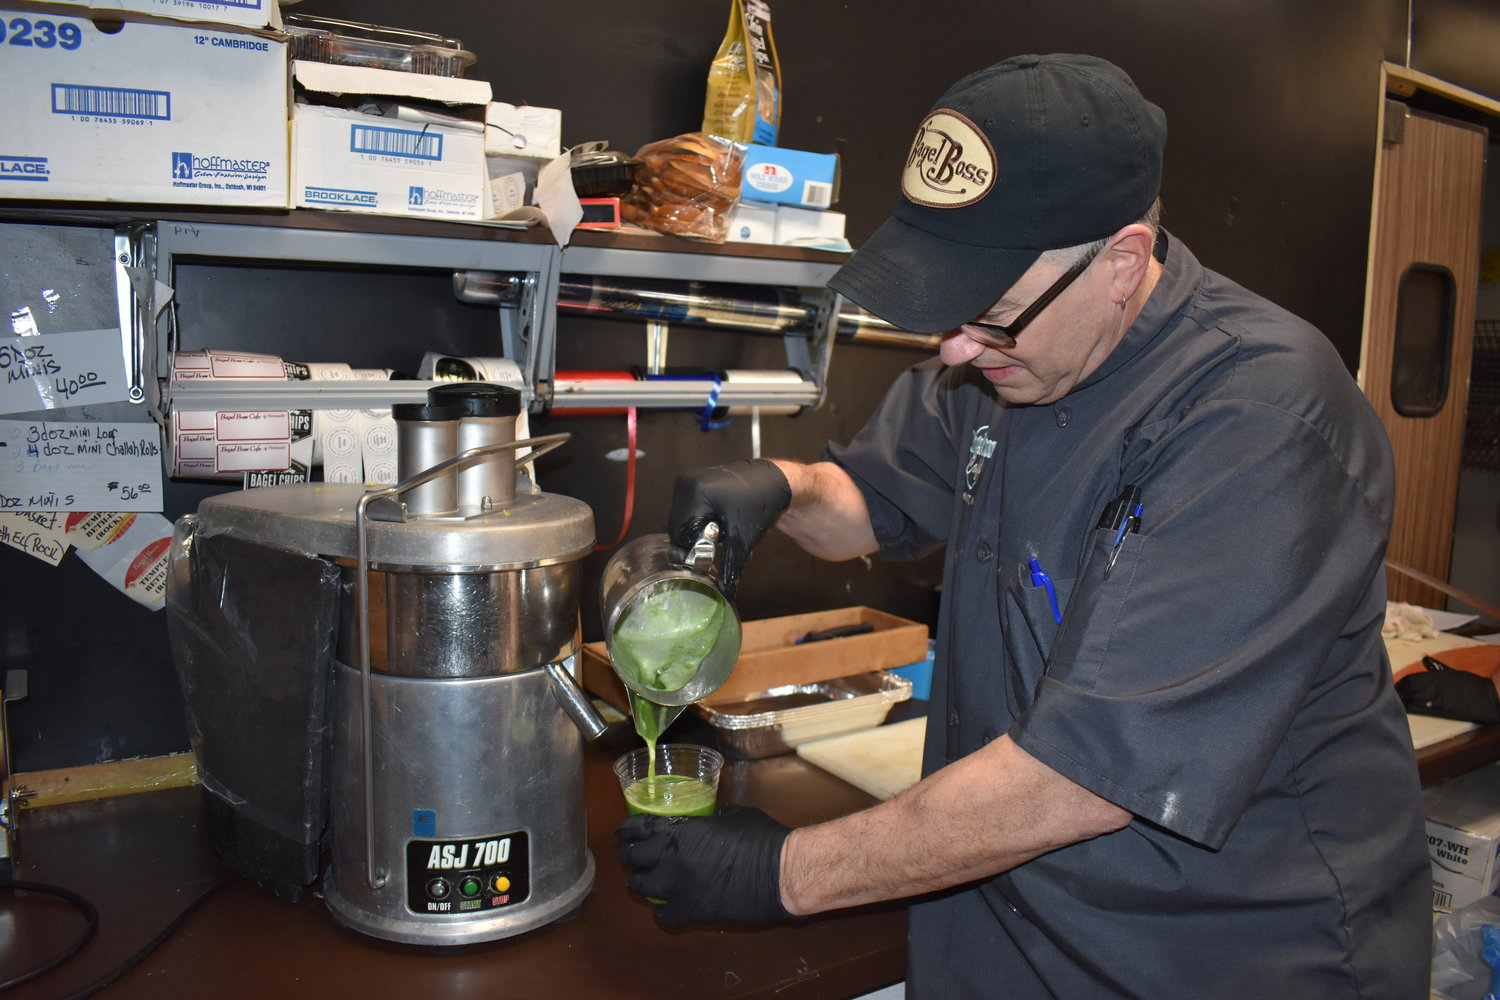 Randy Rosner mixes kale, green apples, celery and lemons together to make a delicious and nutritious juices for the Bagel Boss clientele.